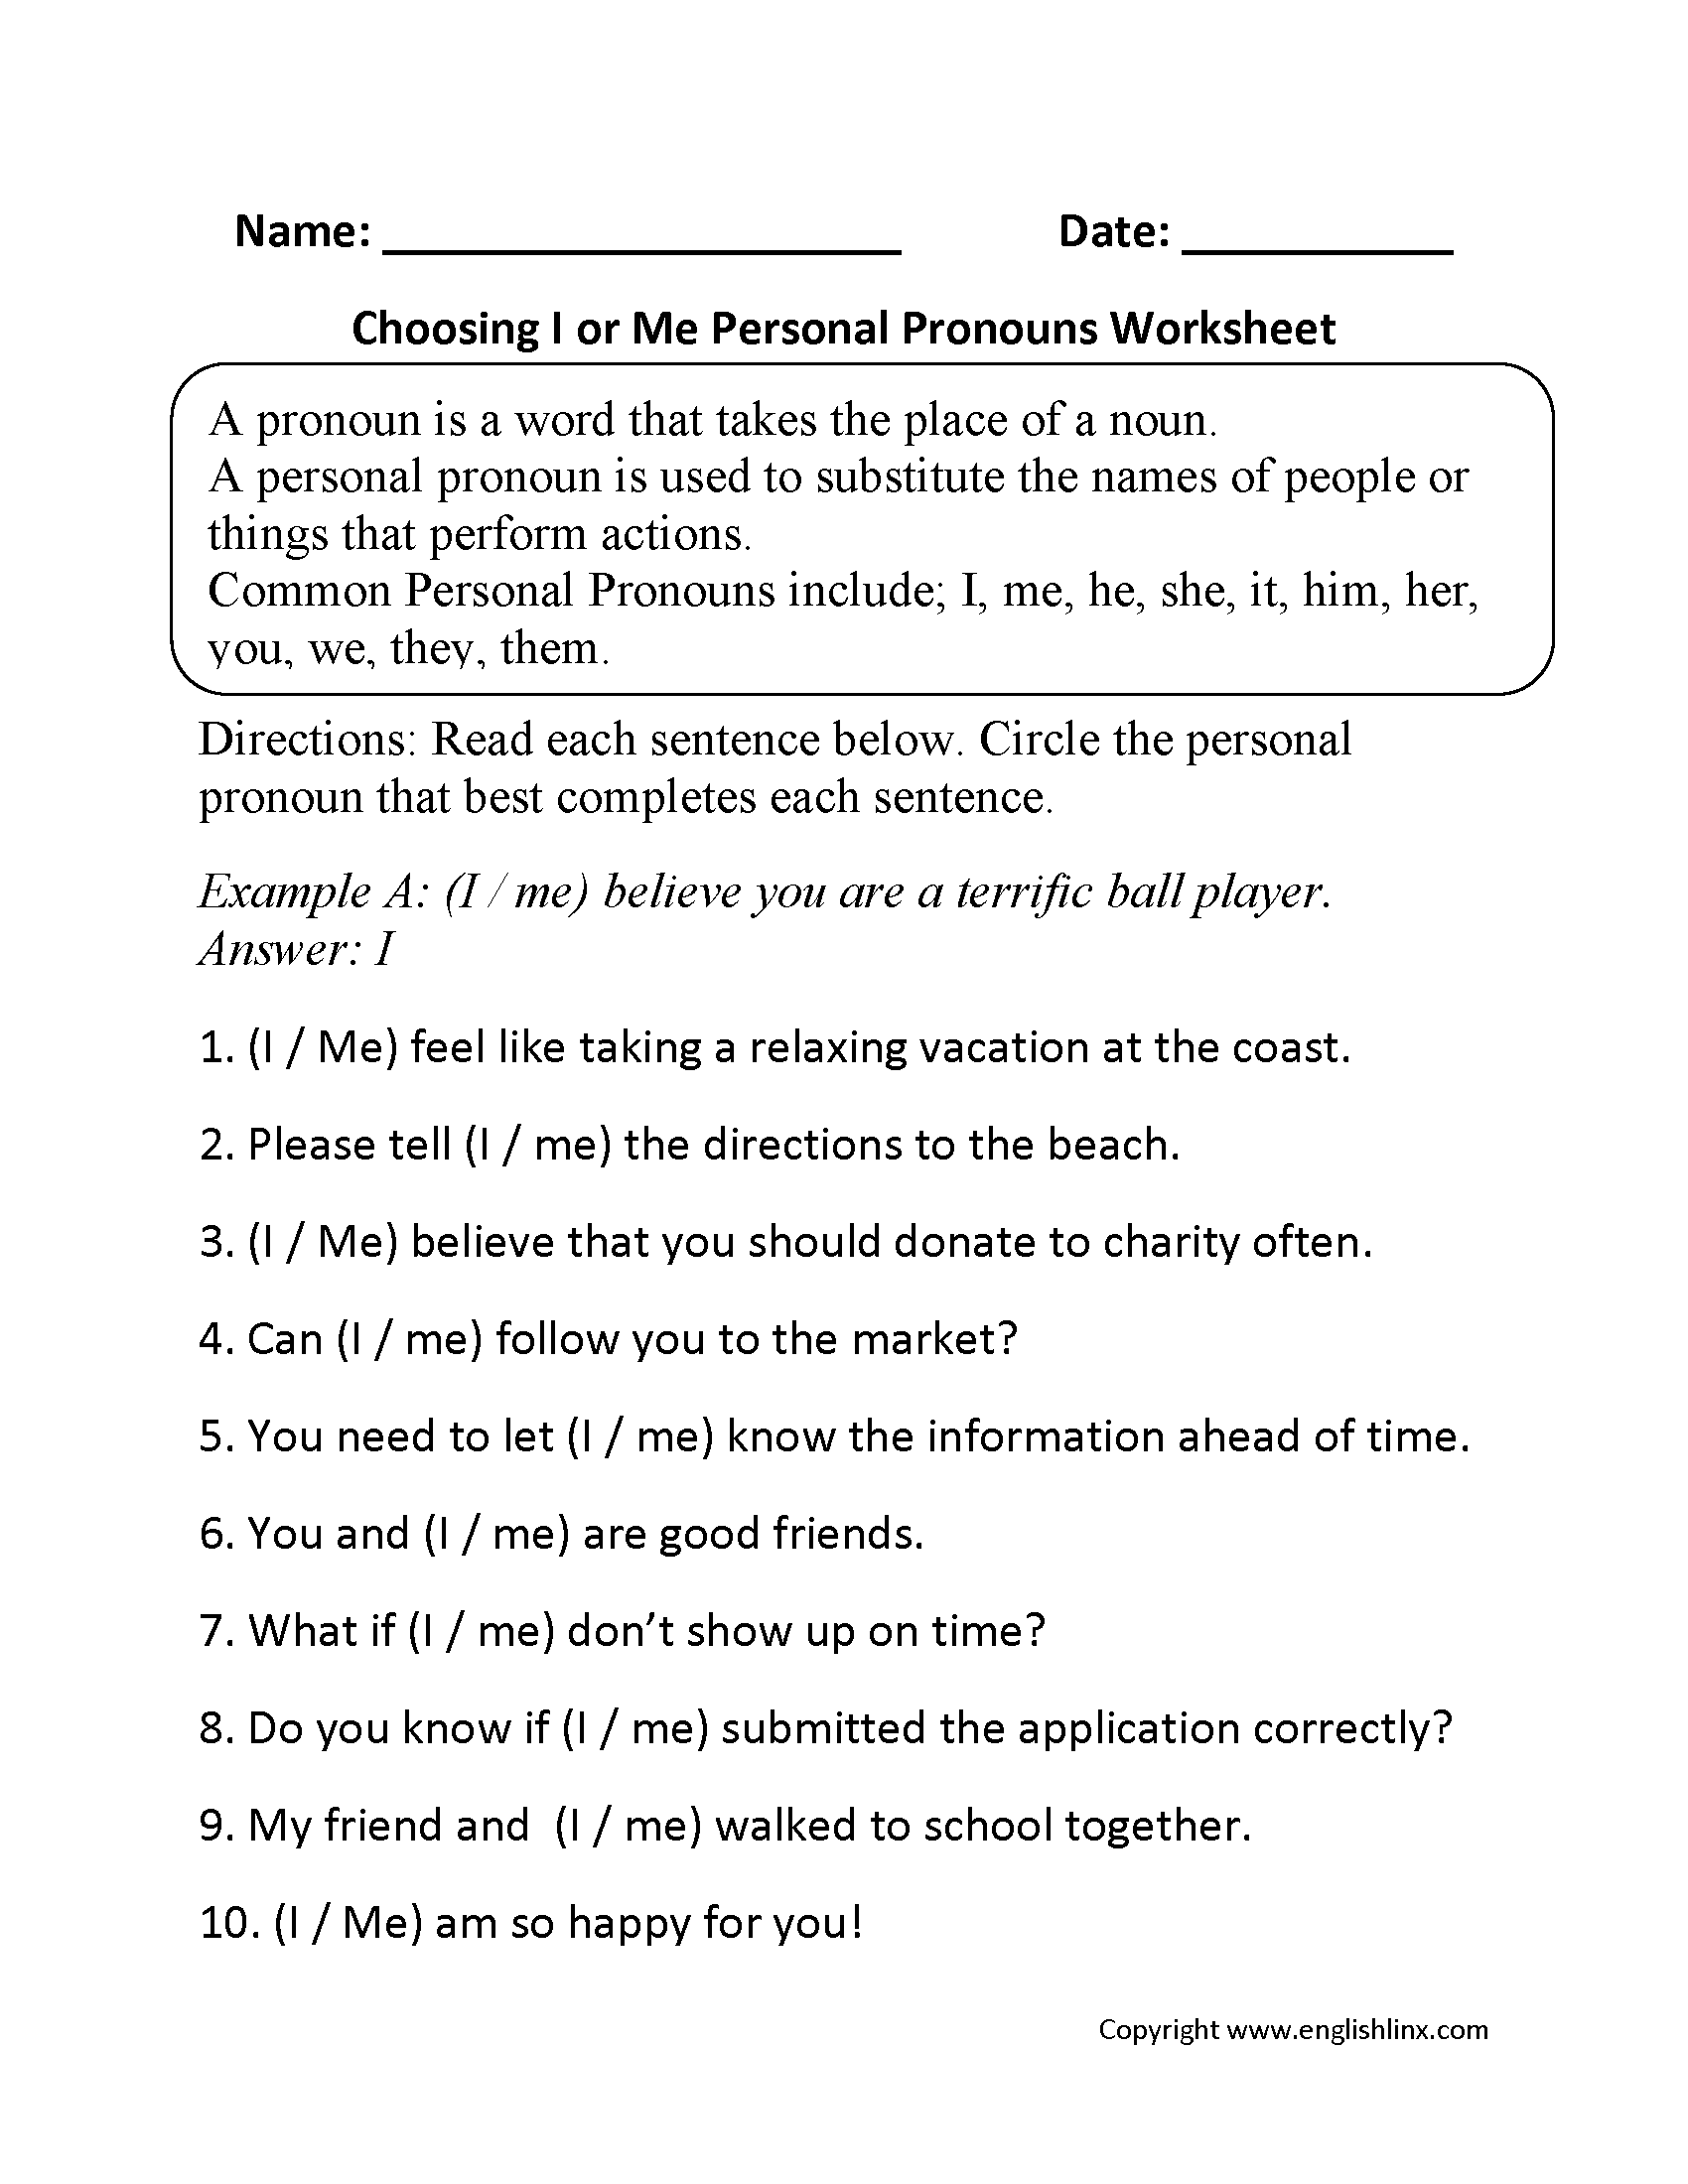 Personal Pronouns Worksheets